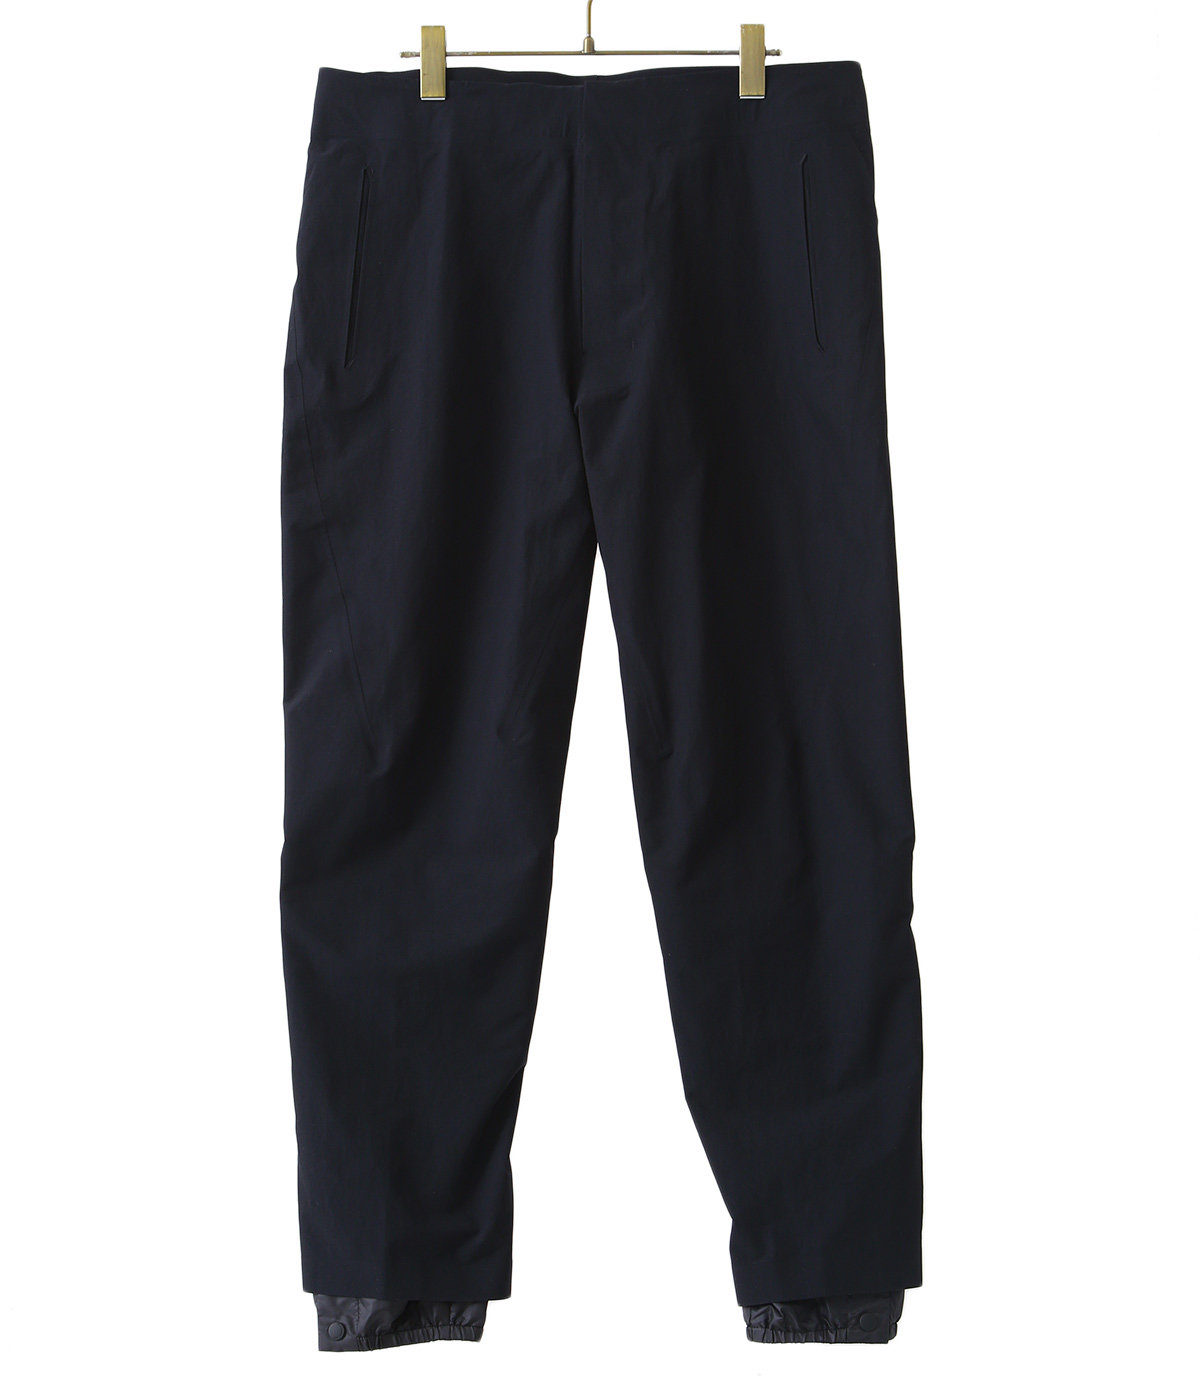 LAYERED GAITER RELAXED FIT PANTS